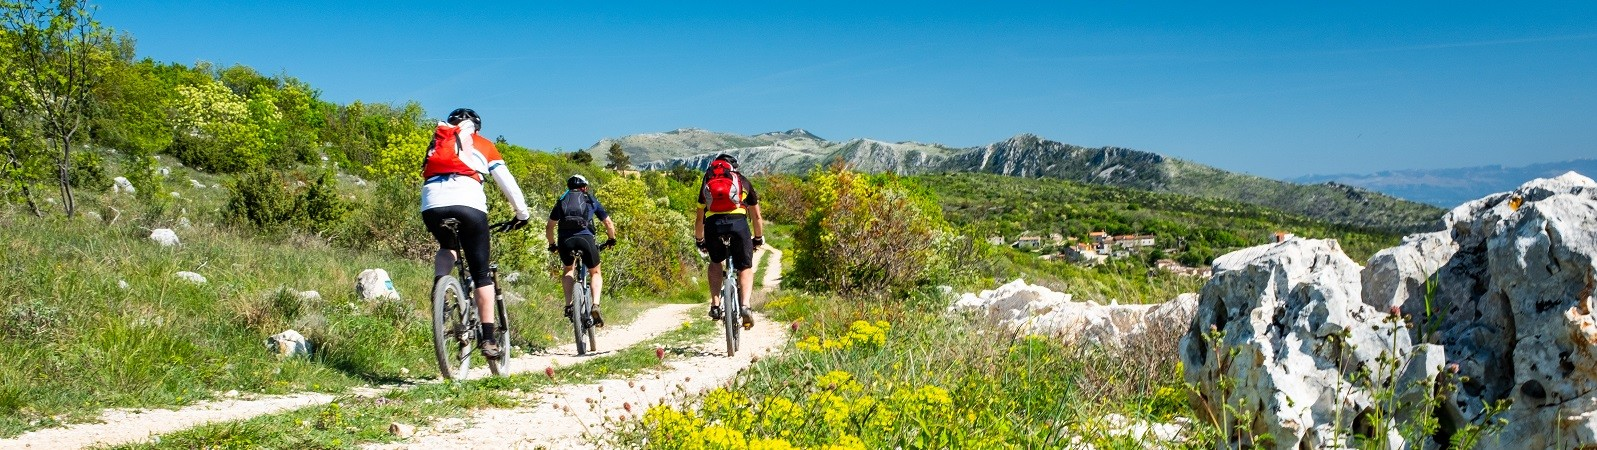 Travel to Croatia and join us in an unforgettable cycling in Istria